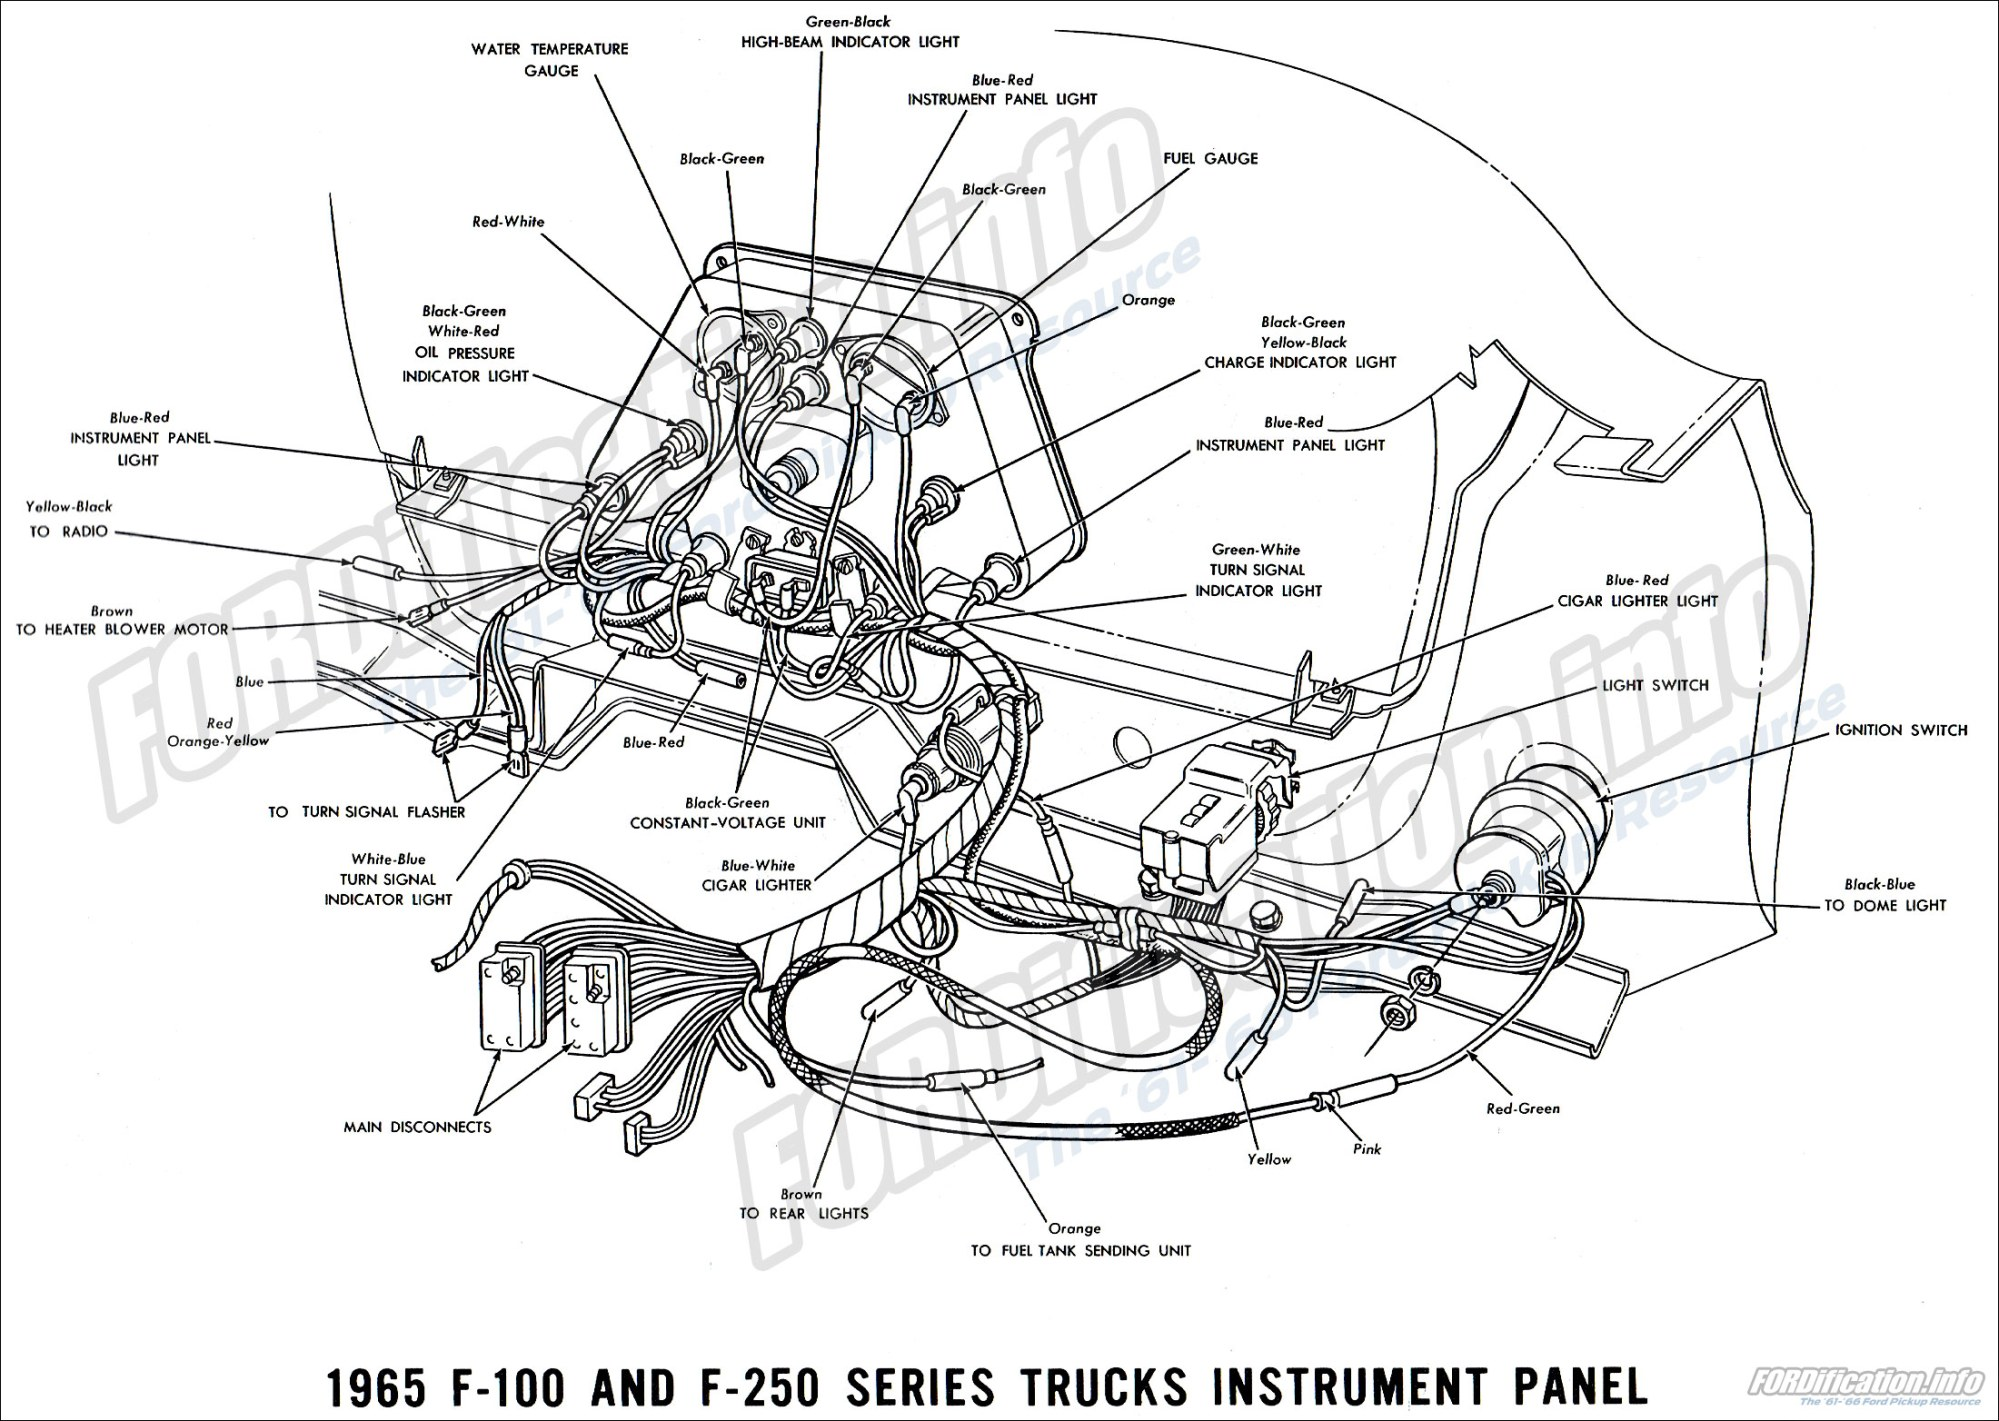 hight resolution of 1965 ford truck wiring diagrams fordification info the 61 66 1965 f 100 and